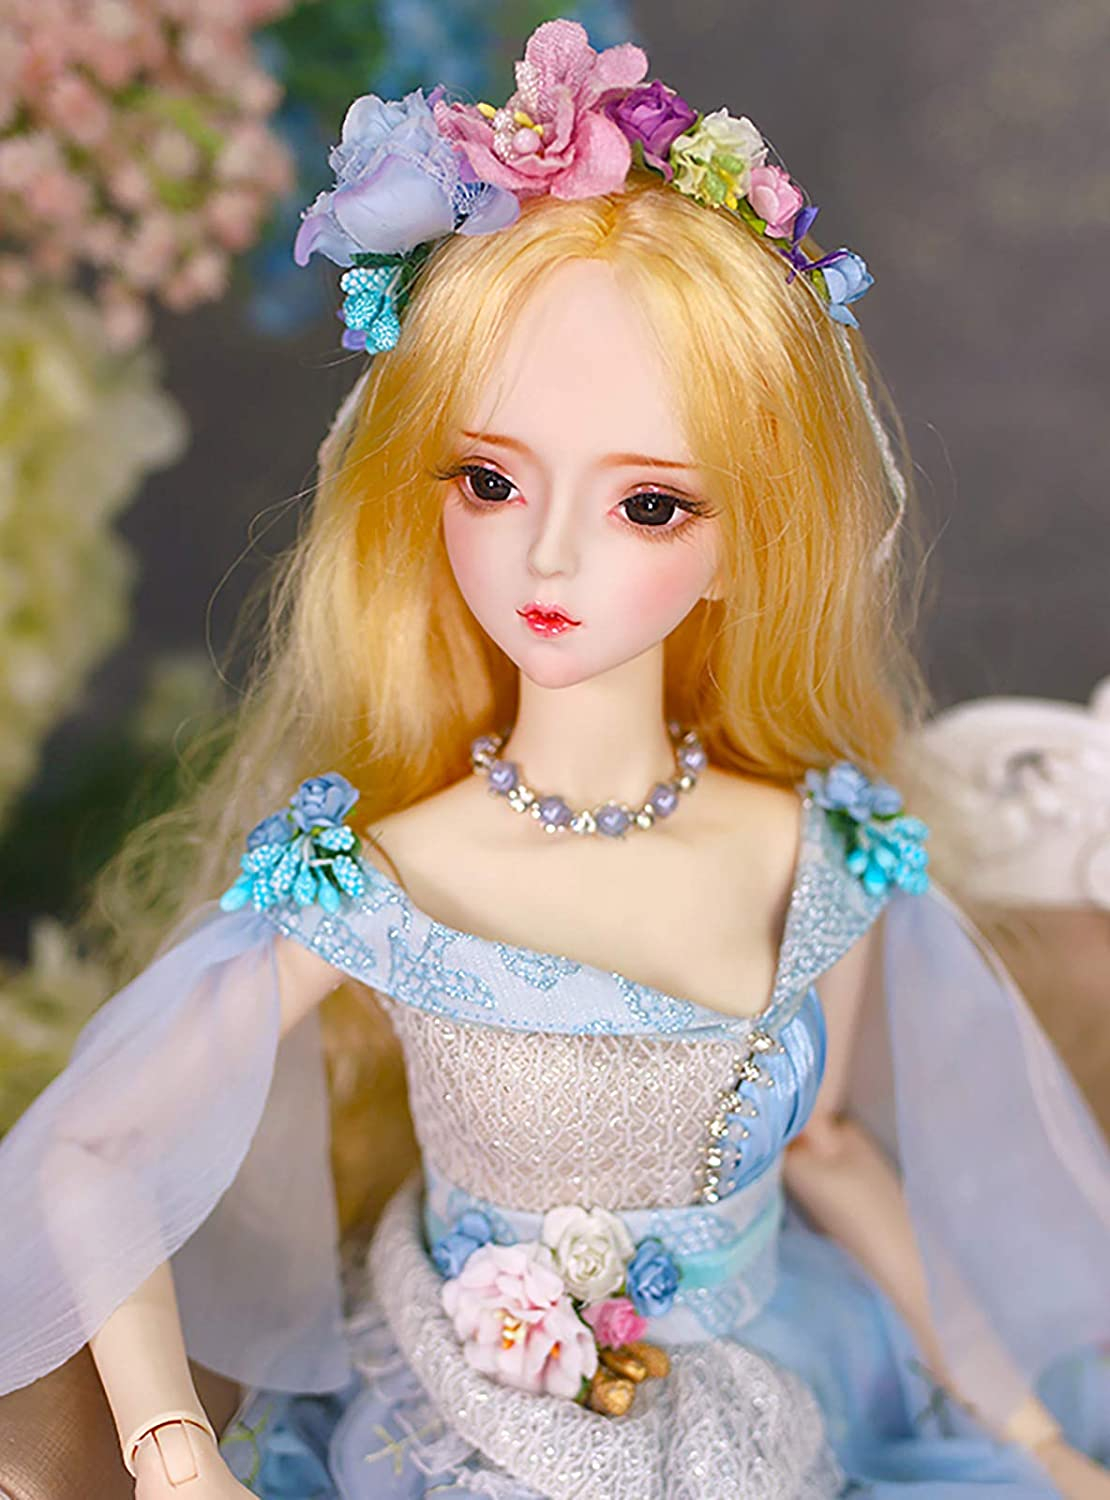 Aongneer BJD Dolls 1//3 Doll 24 Inch 34 Ball Joints Doll DIY Toy Gift Dream Fairy DBS Doll Lifelike Pose with Brown Wig Gorgeous Dress Nice Shoes Beautiful Makeup for Birthday-Alina